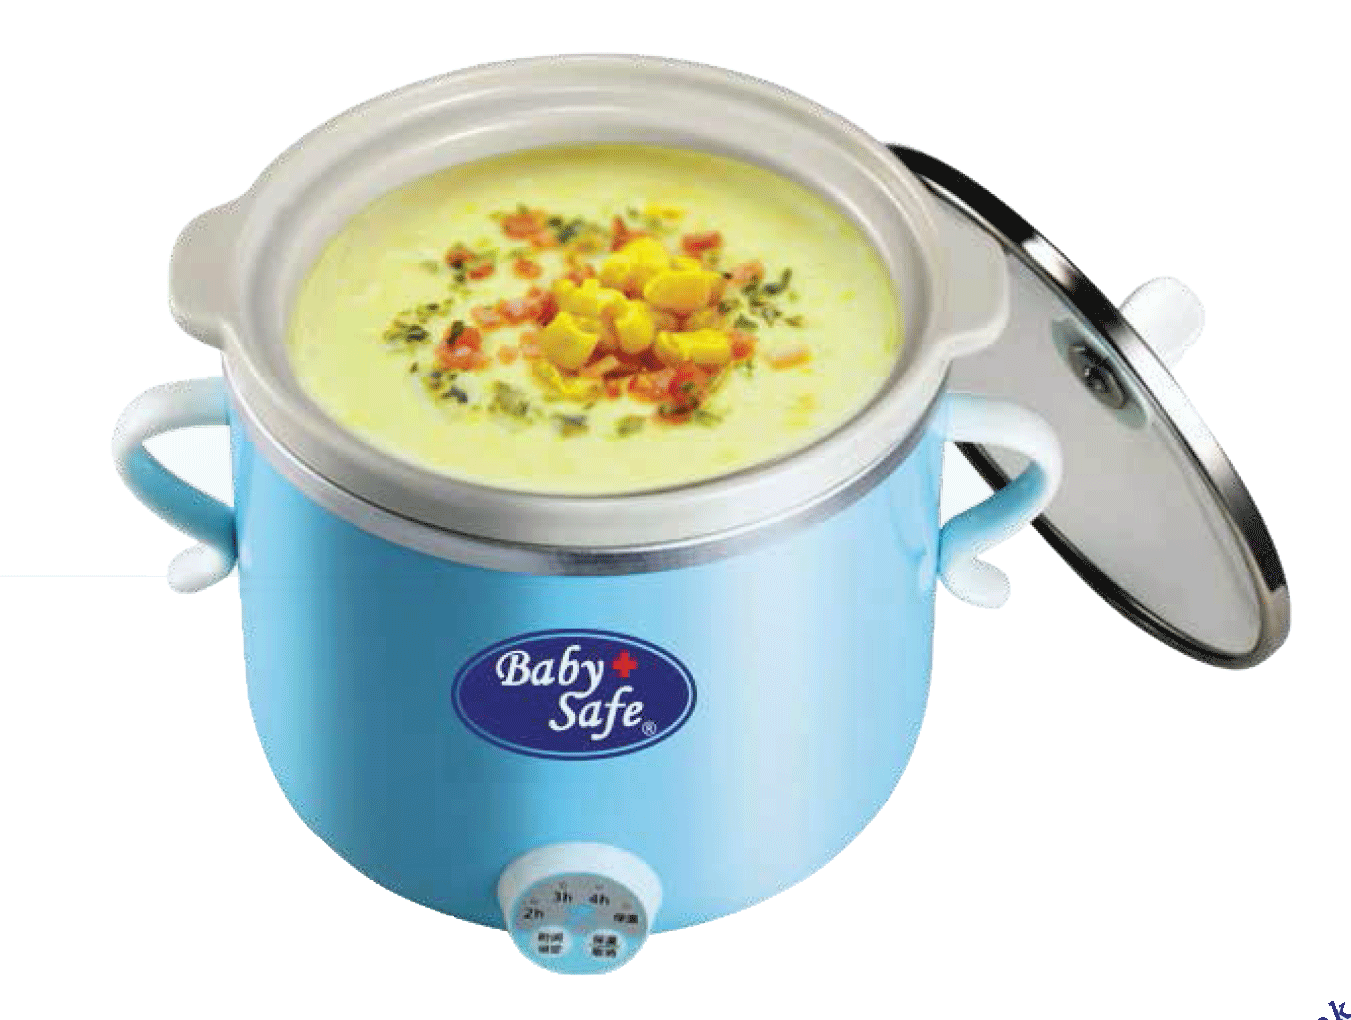 Baby Safe Lb 004 Food Steam Cooker Daftar Harga Terlengkap Digital Slow